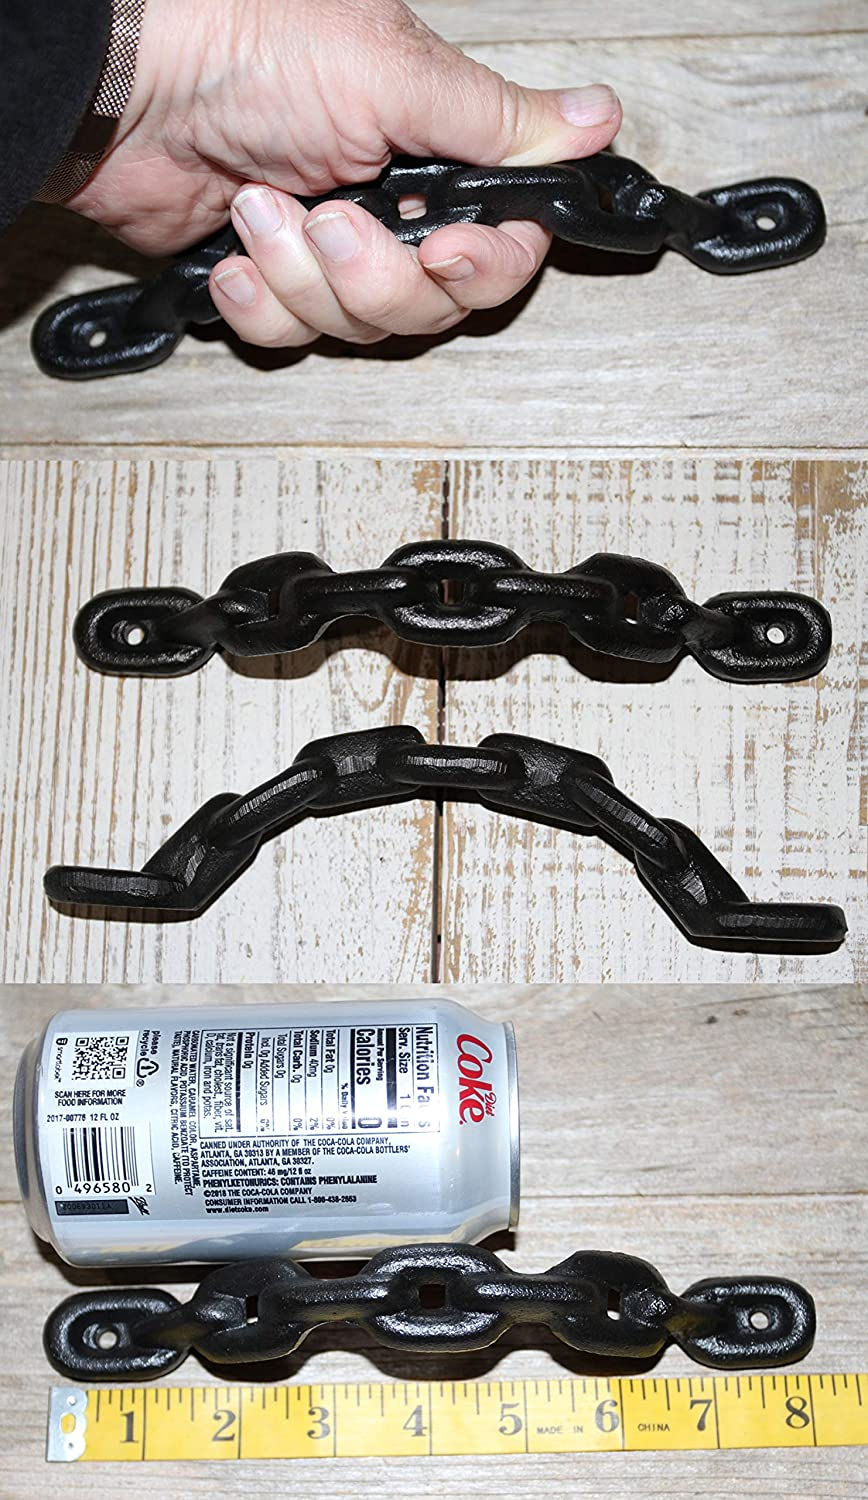 Southern Metal 4 Large Masculine Furniture Handles Pulls, Heavy Black Chain Design, Cast Iron, 8 inch, HW-105